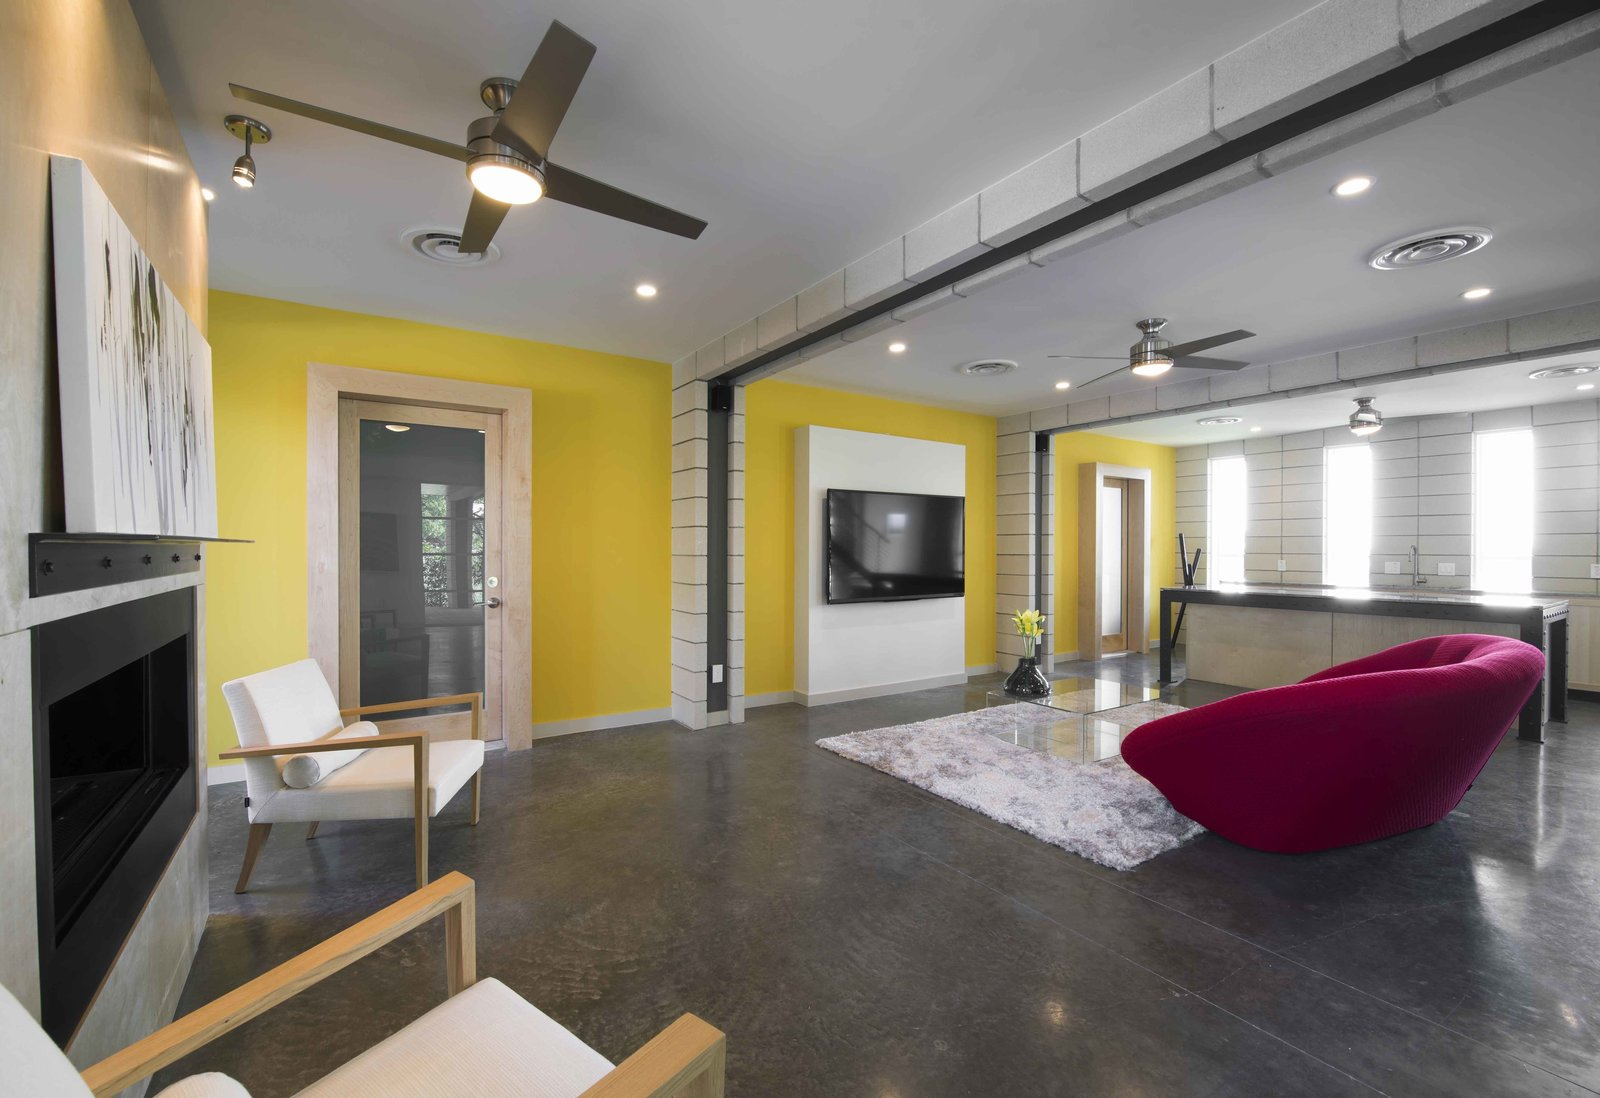 Contemporary, bright accents contrast with the dark concrete floors in the entertainment area.